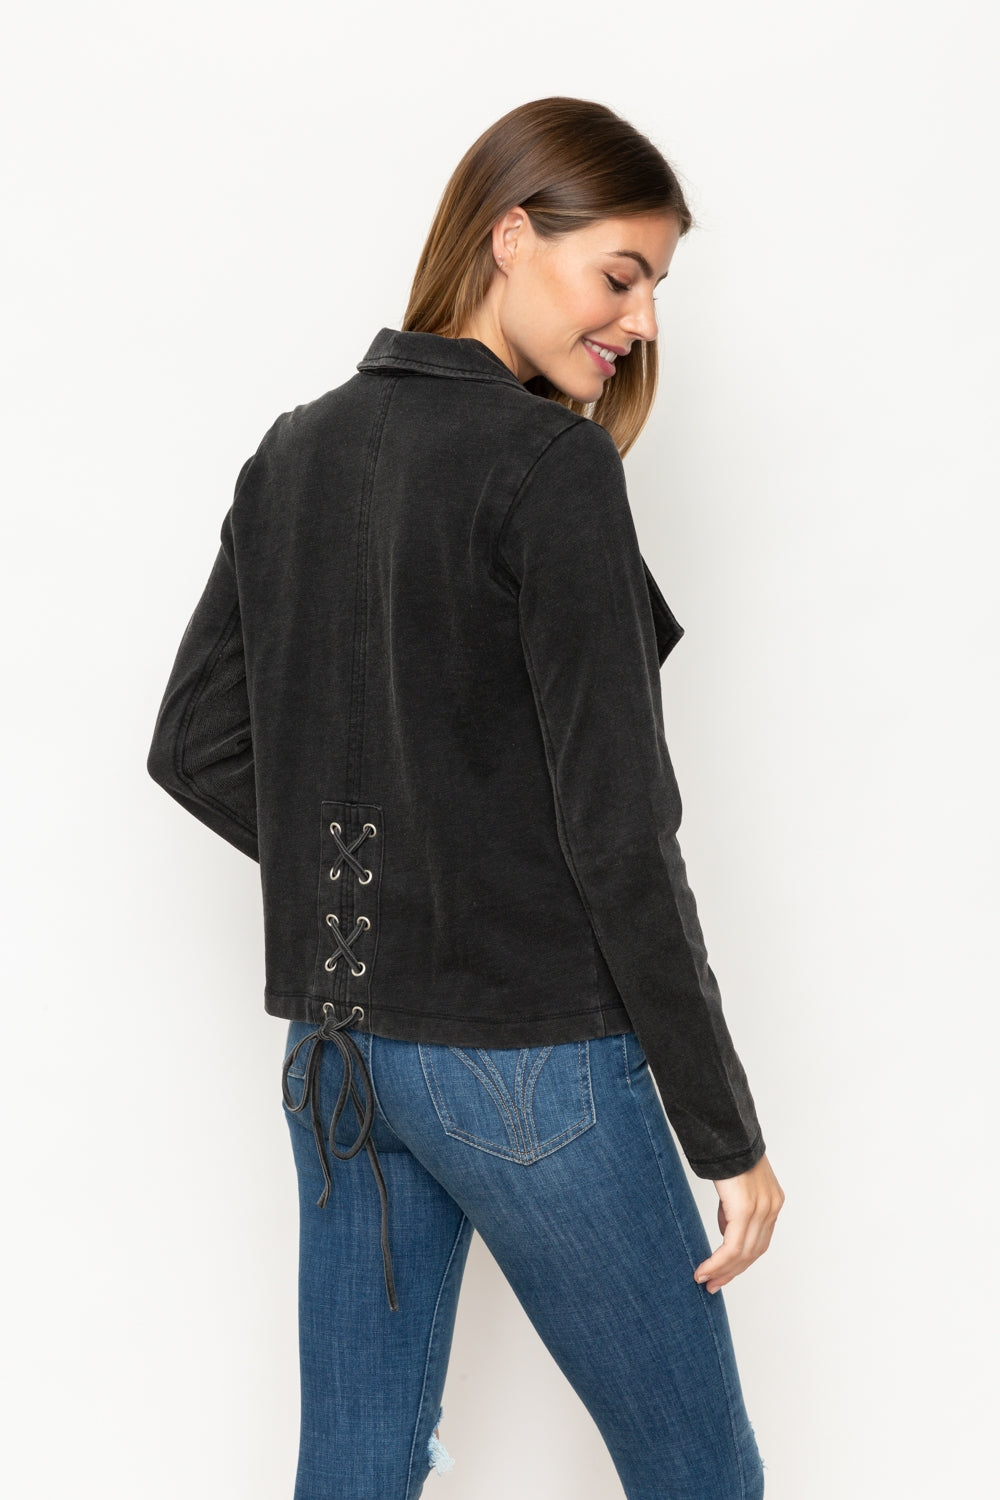 Ash Wash Lace Up Back Jacket